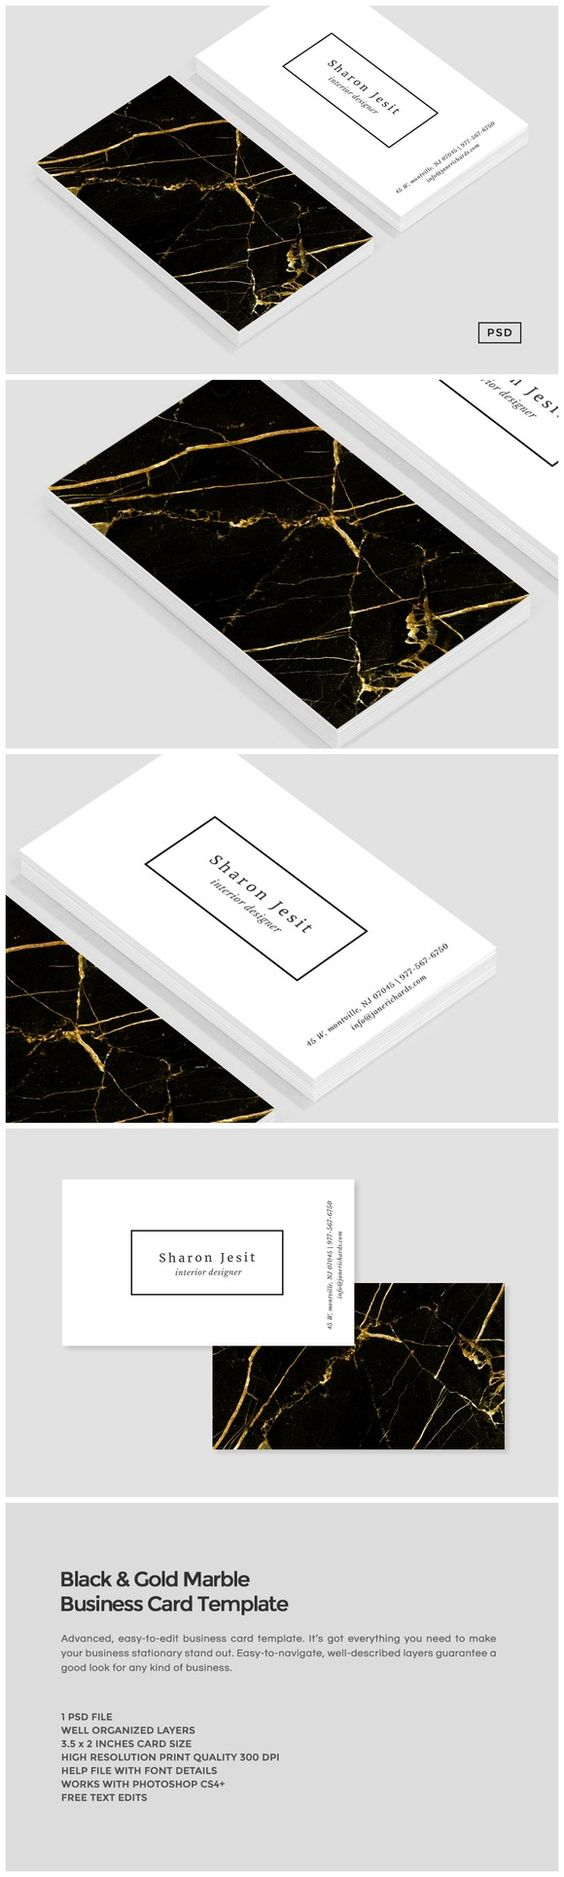 Black & Gold Marble Business Card by Design Co. on Creative Market ...